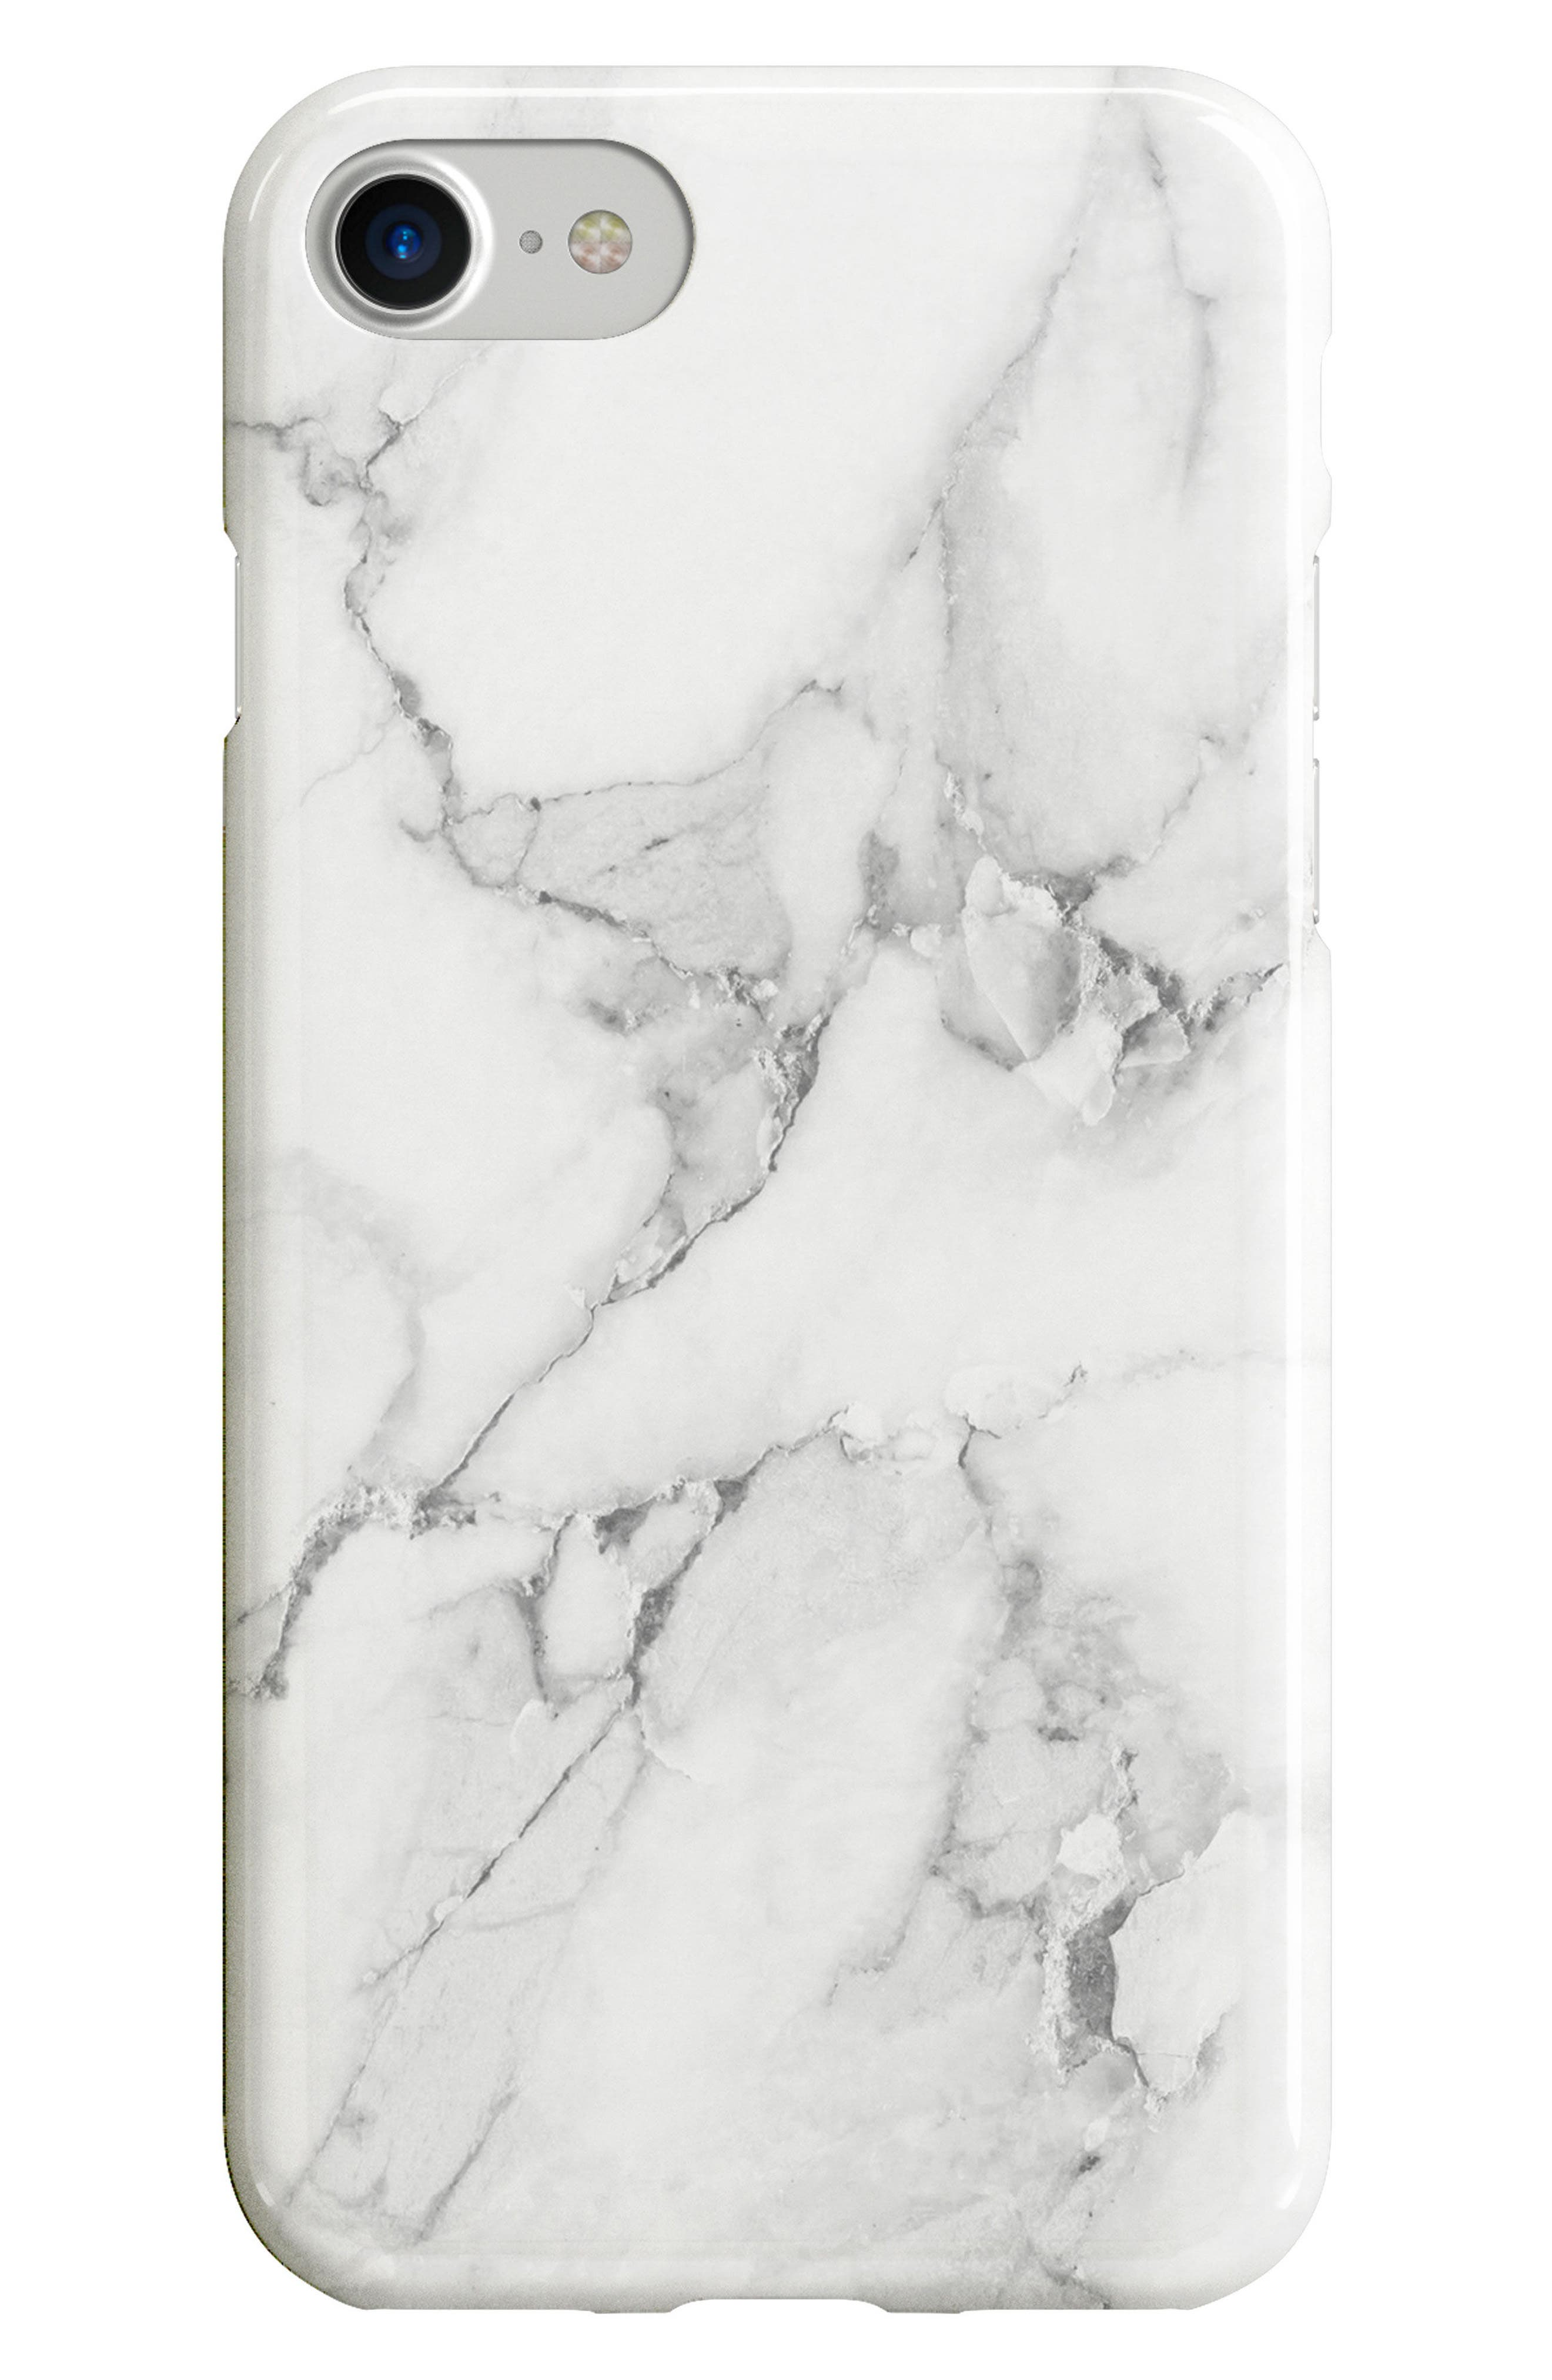 Main Image - Recover White Marble iPhone 6/7 Case